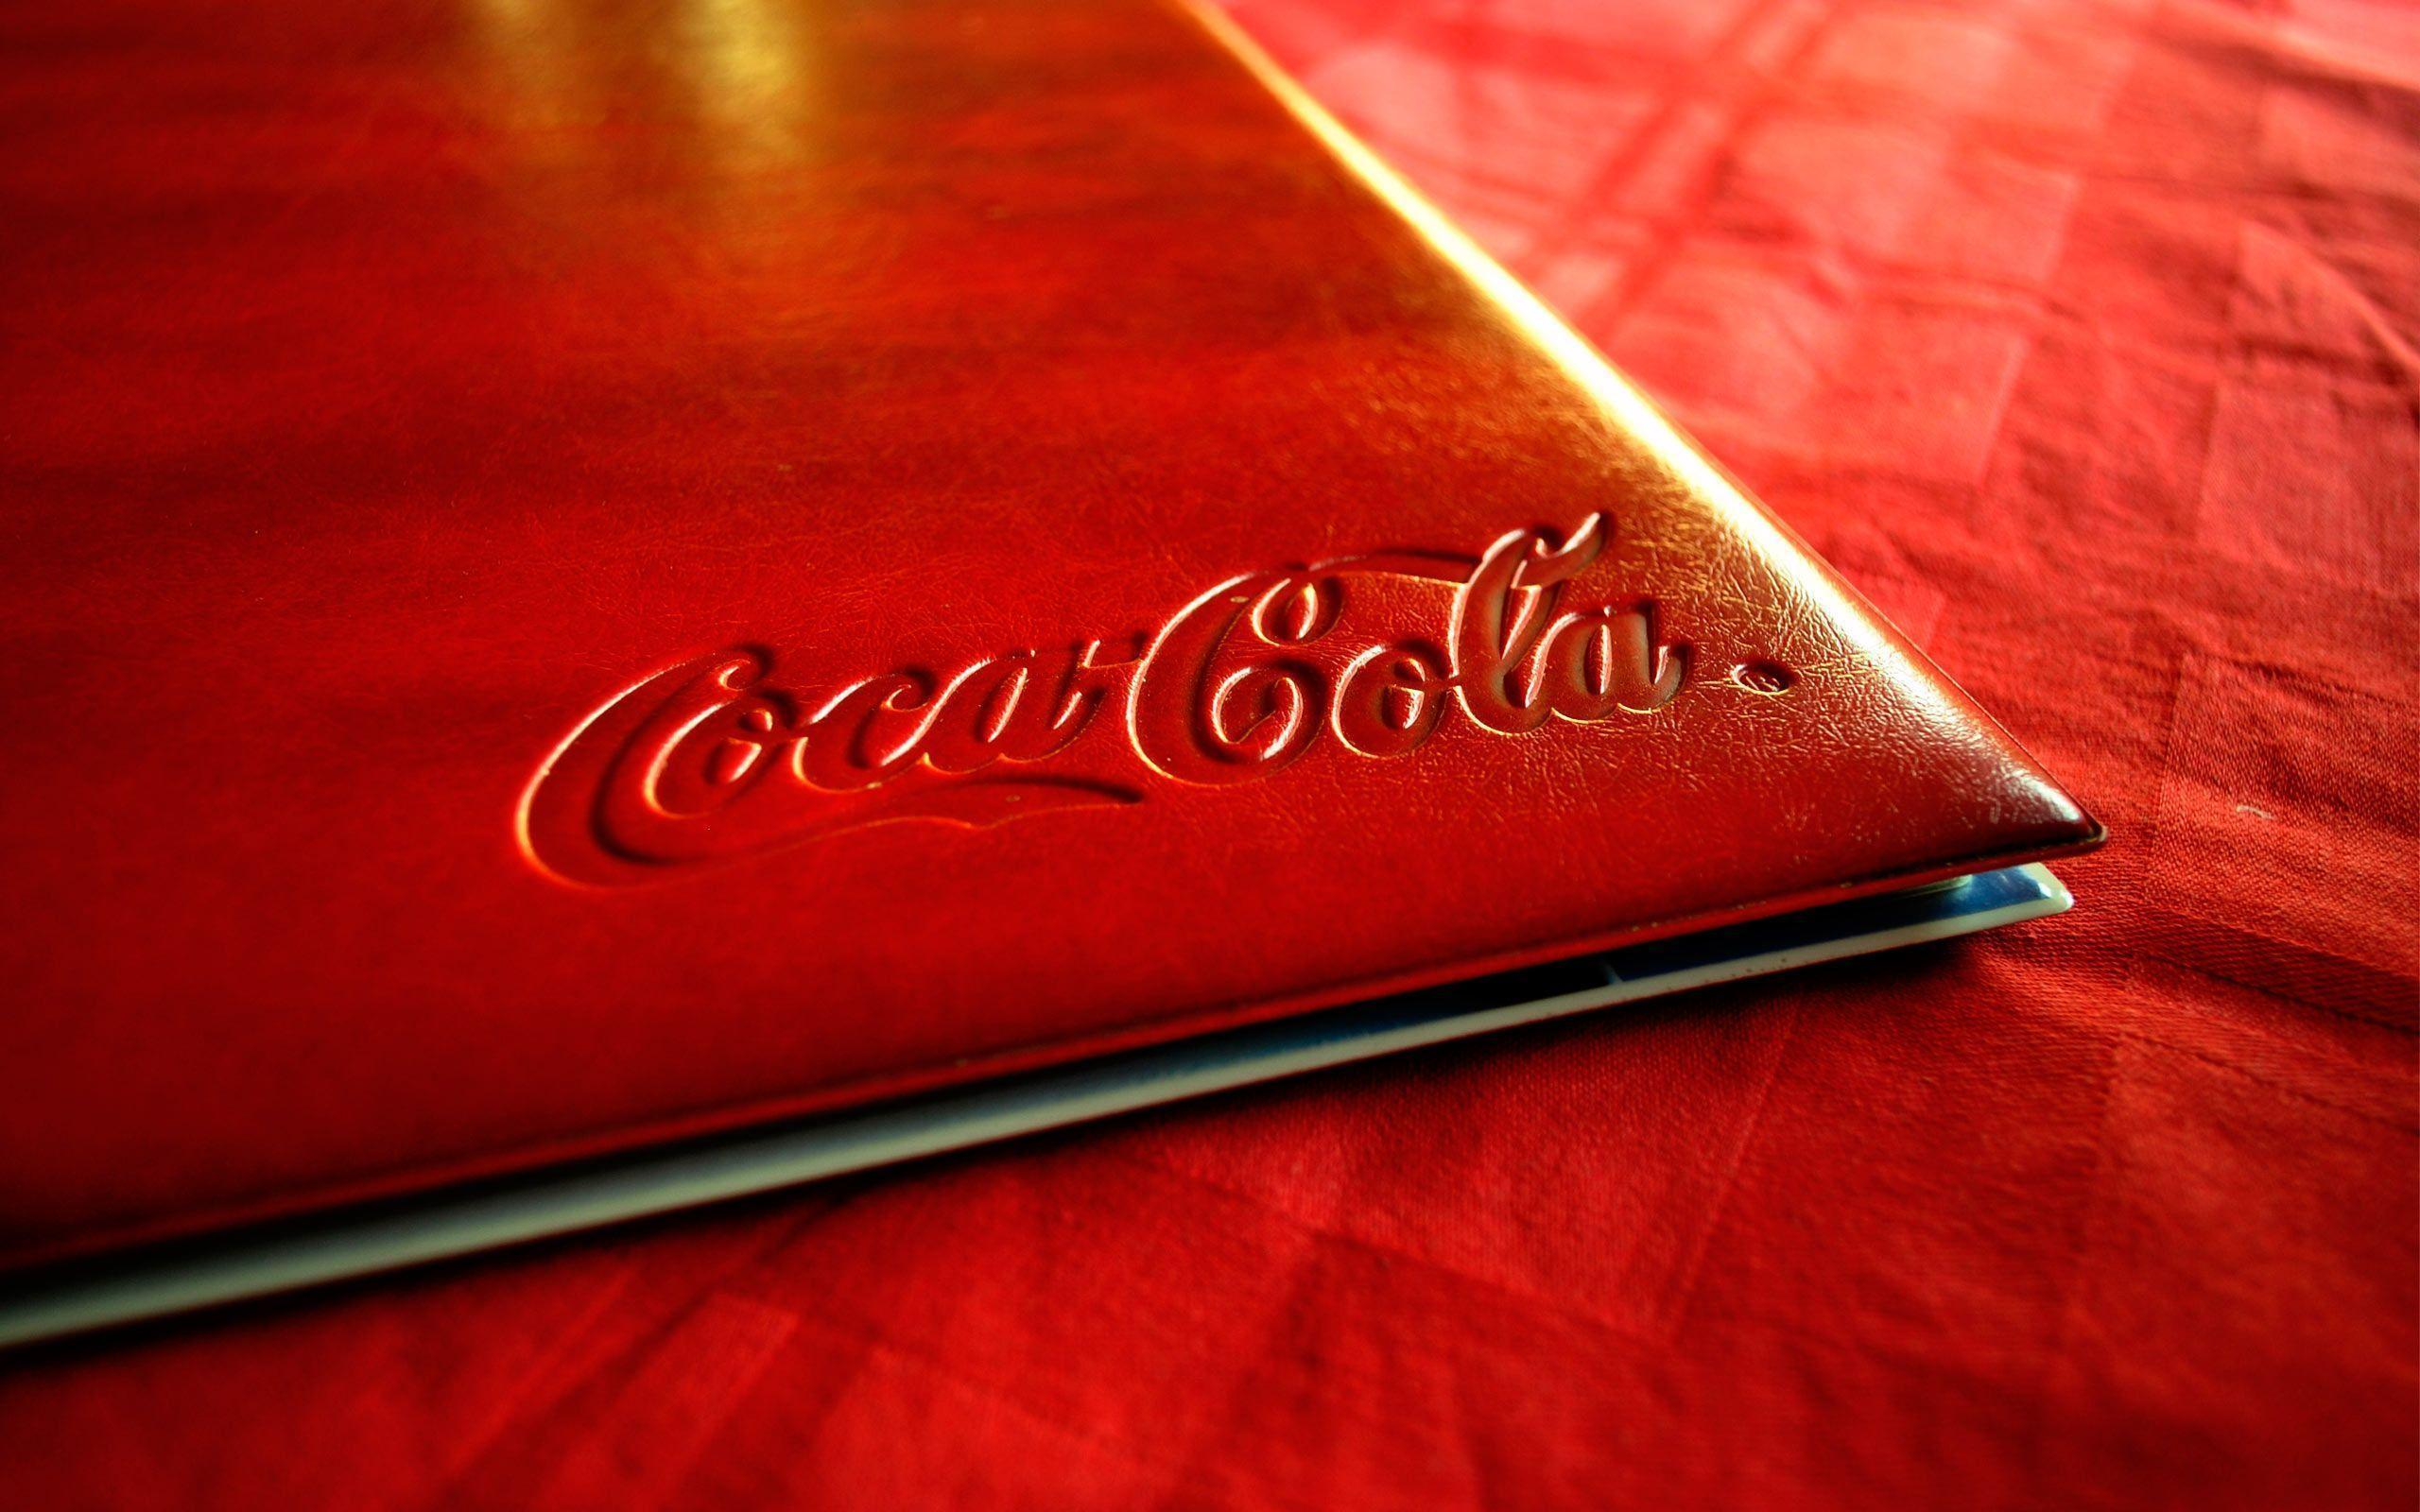 Coca Cola Wallpapers 25 20250 Image HD Wallpapers